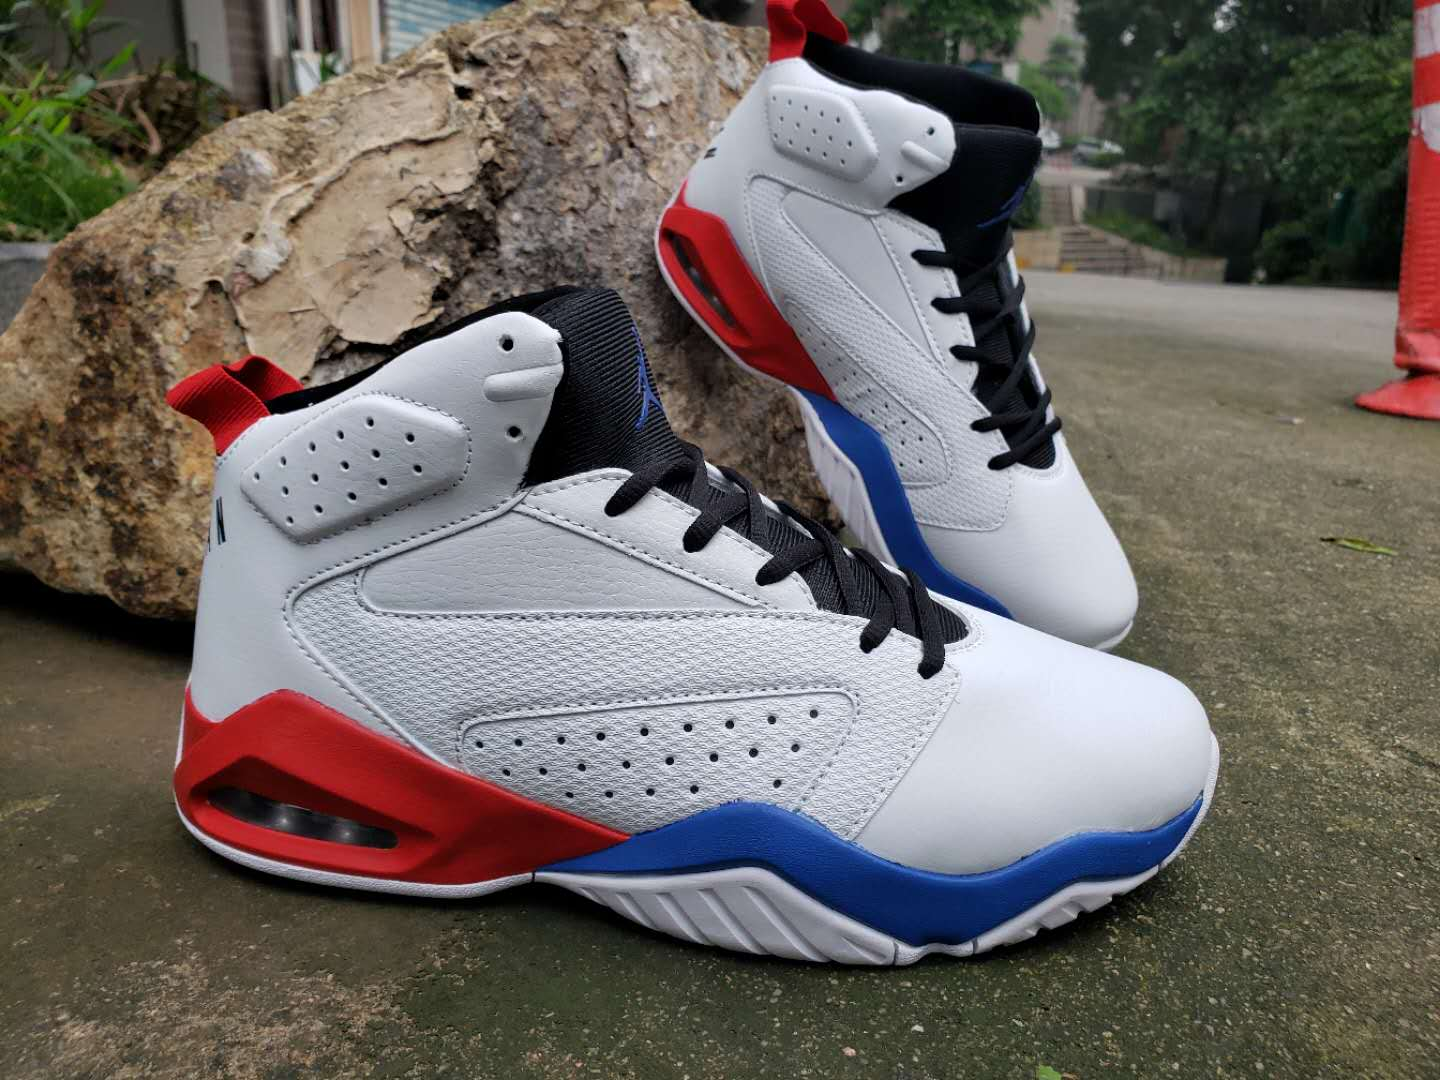 Air Jordan Lift Off AJ6 White Red Blue Black Shoes